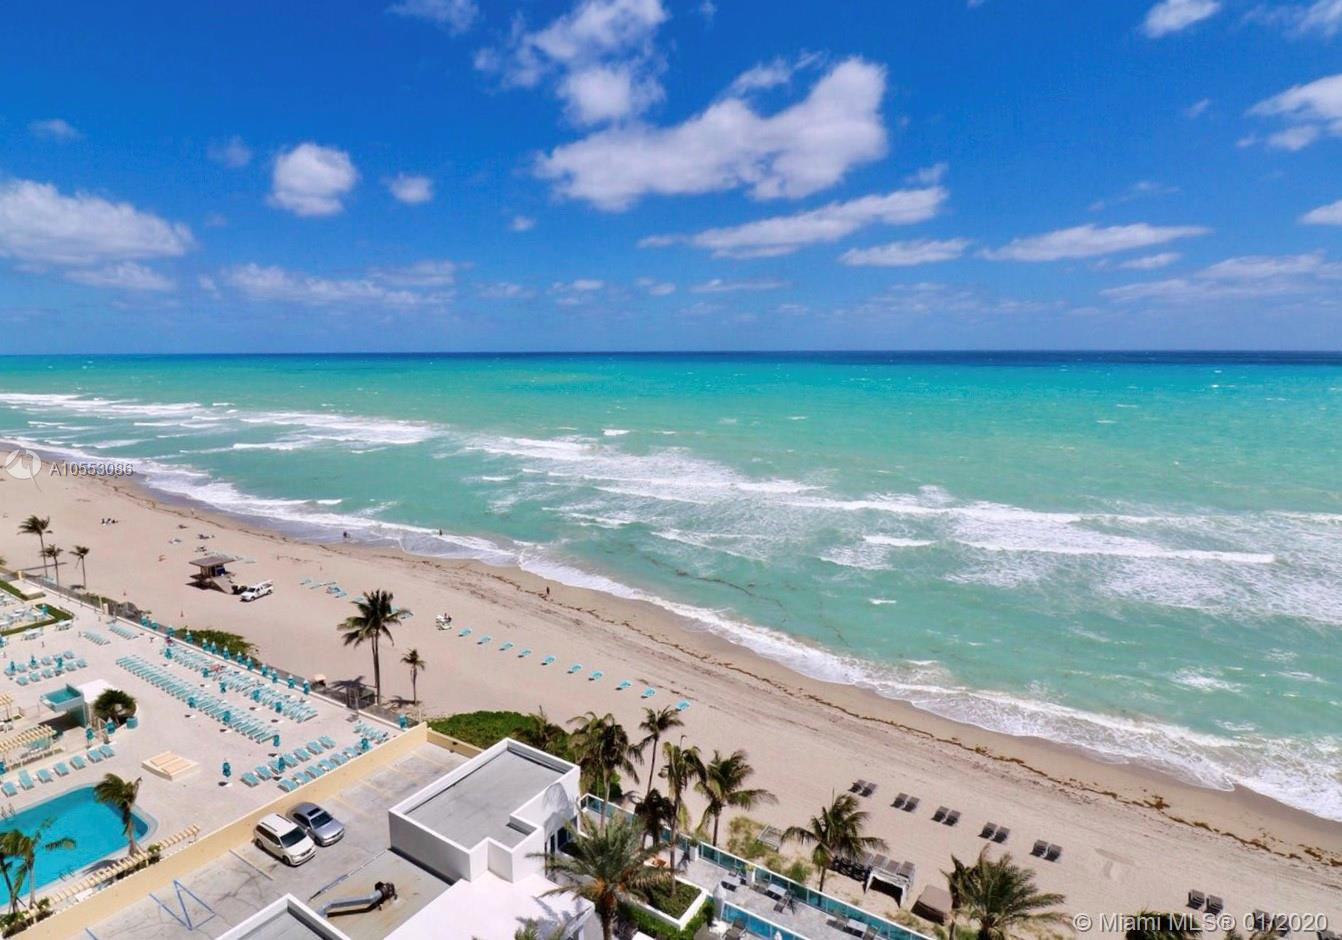 Best buyer in the tower.  This is the one!  Great value unit at Trump Hollywood, experience unsurpassed views of the ocean and also the intracoastal sunsets. Features 3,395 SF, 3 Beds / Den and 3.5 Baths.  Private balcony and elevator.  This unit is turn key. Building offers upscale amenities including concierge, party room, breakfast area, gym, sauna, theatre, library and wine cellar. Very easy to show.